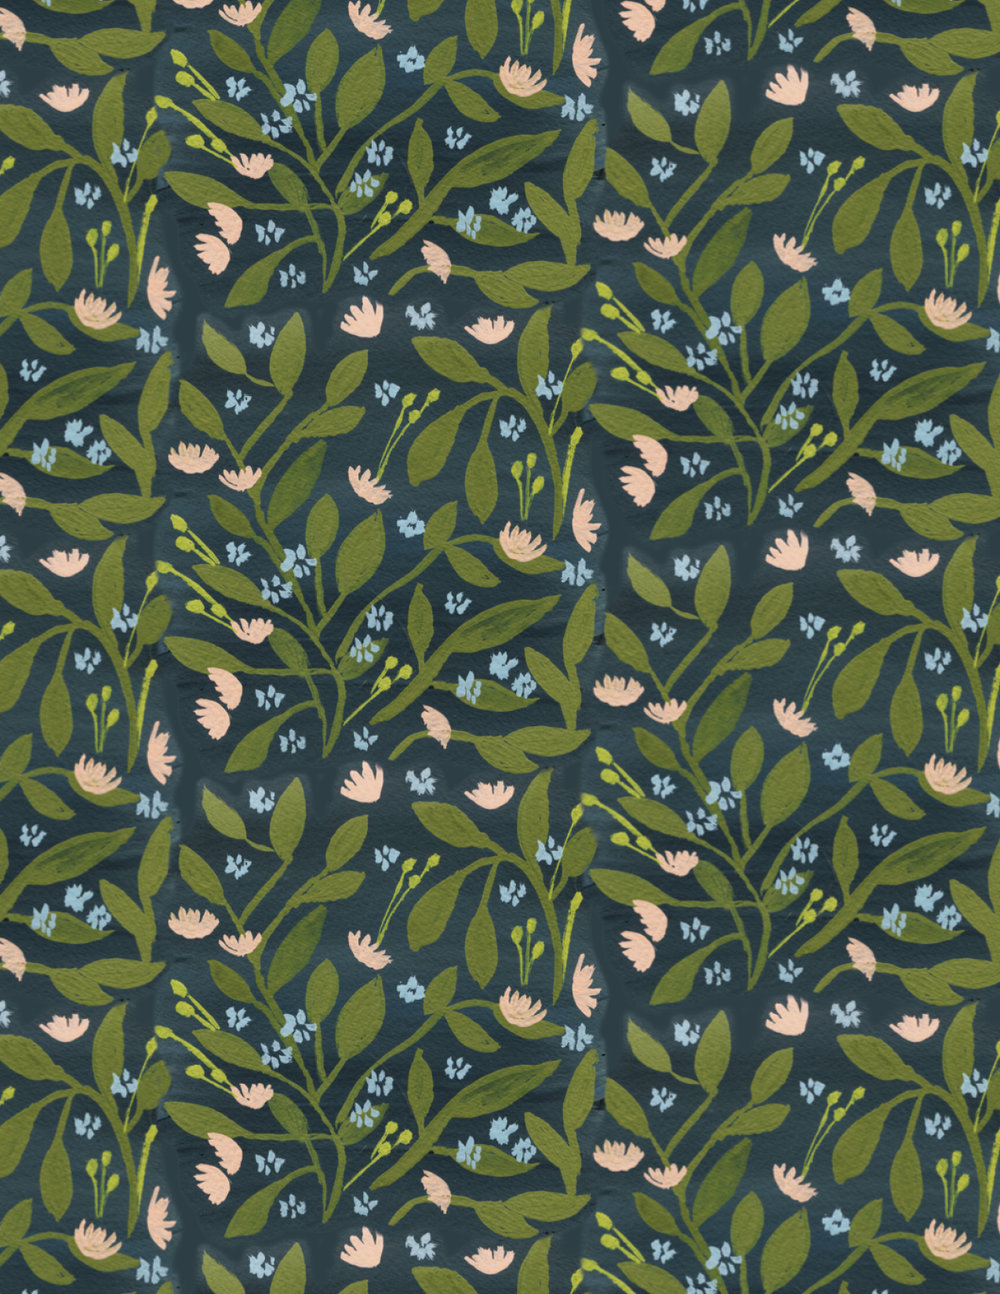 Jessbruggink_patterns_new22.jpg